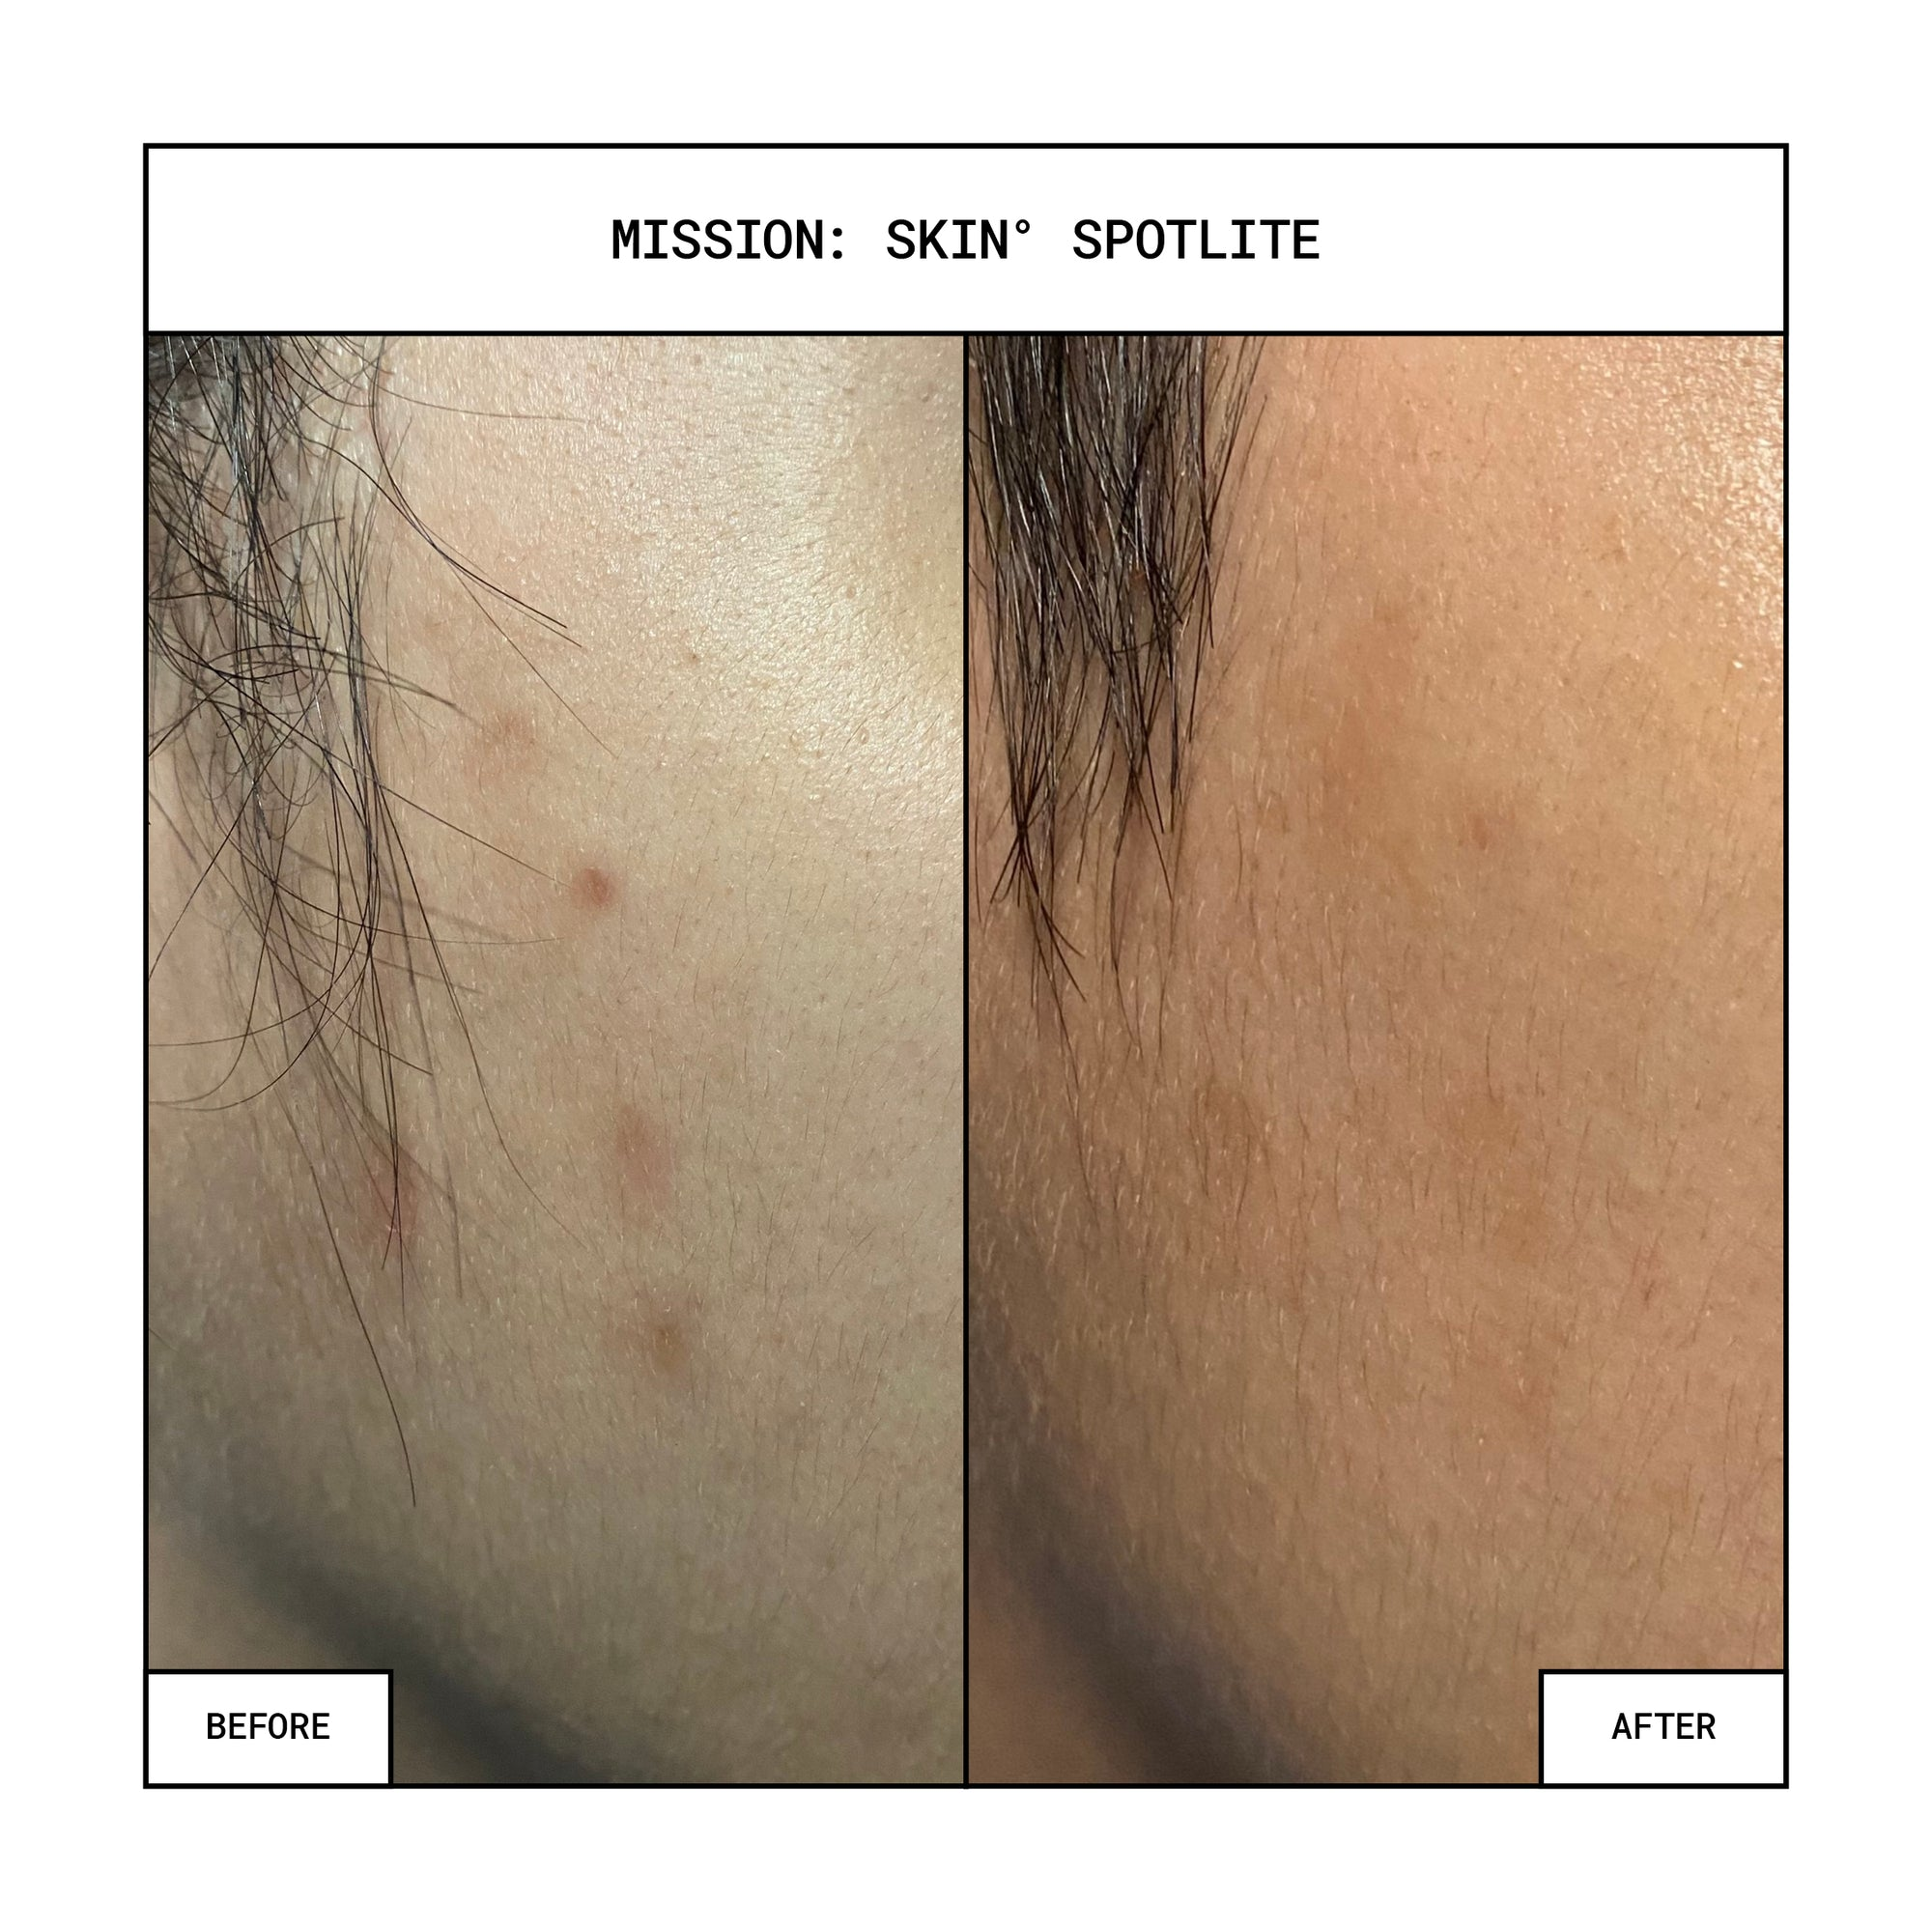 MISSION: SKIN° SpotLite Acne Spot Concentrate 10mL